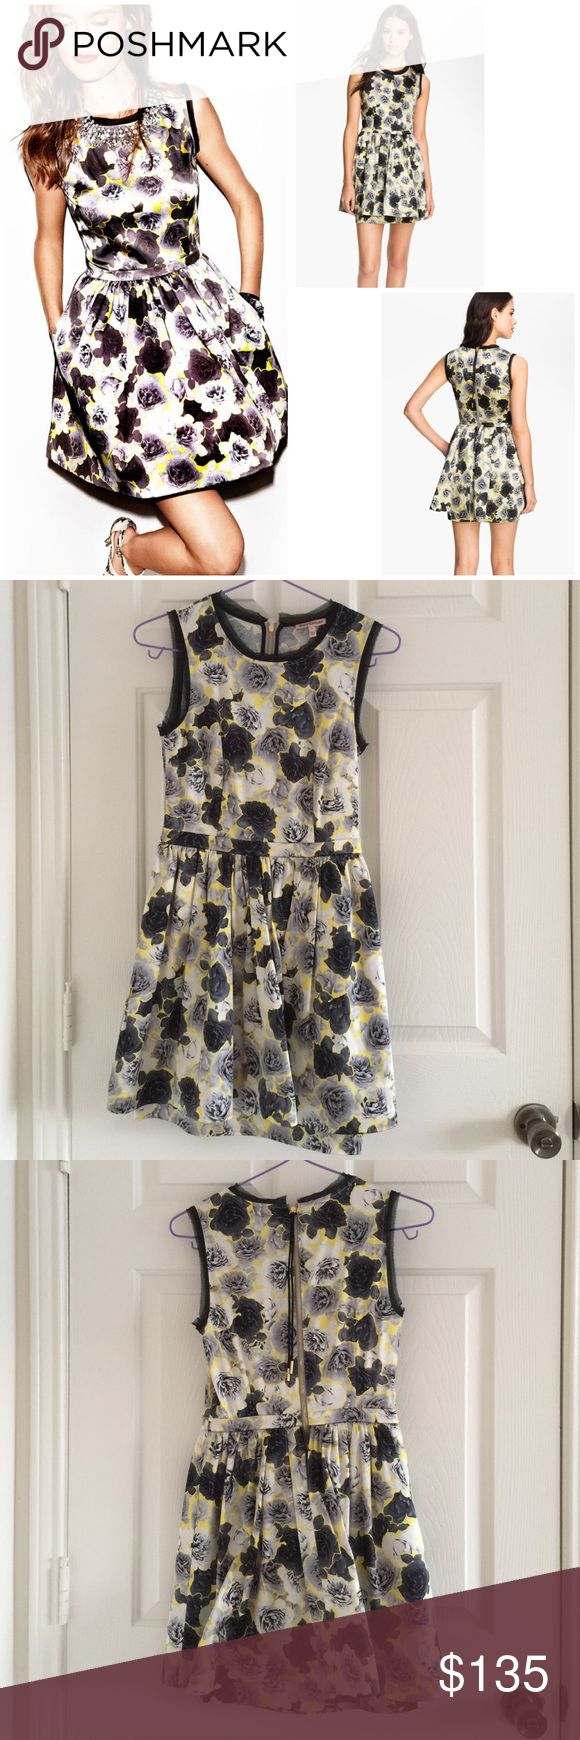 Juicy Couture floral dress 0 Only worn once,in like new condition,❌NO TRADE‼️ Juicy Couture Dresses